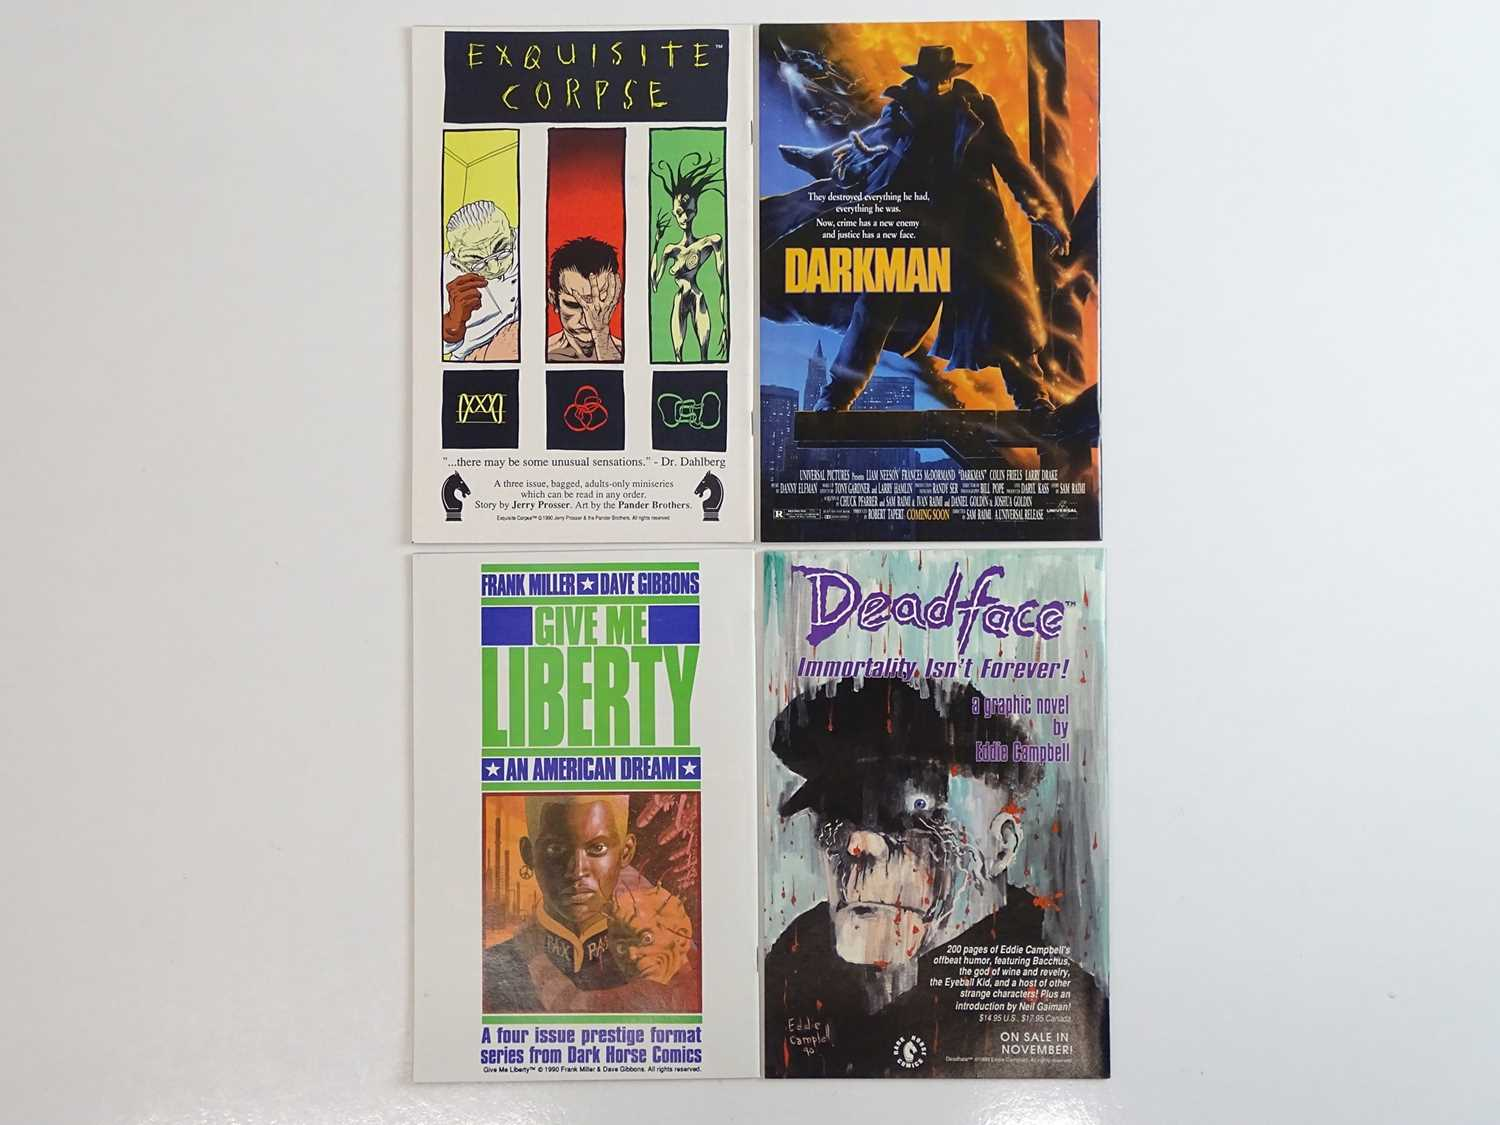 ALIENS: EARTH WAR #1, 2, 3, 4 - (4 in Lot) - (1990 - DARK HORSE) - ALL First Printings - Complete - Image 2 of 2